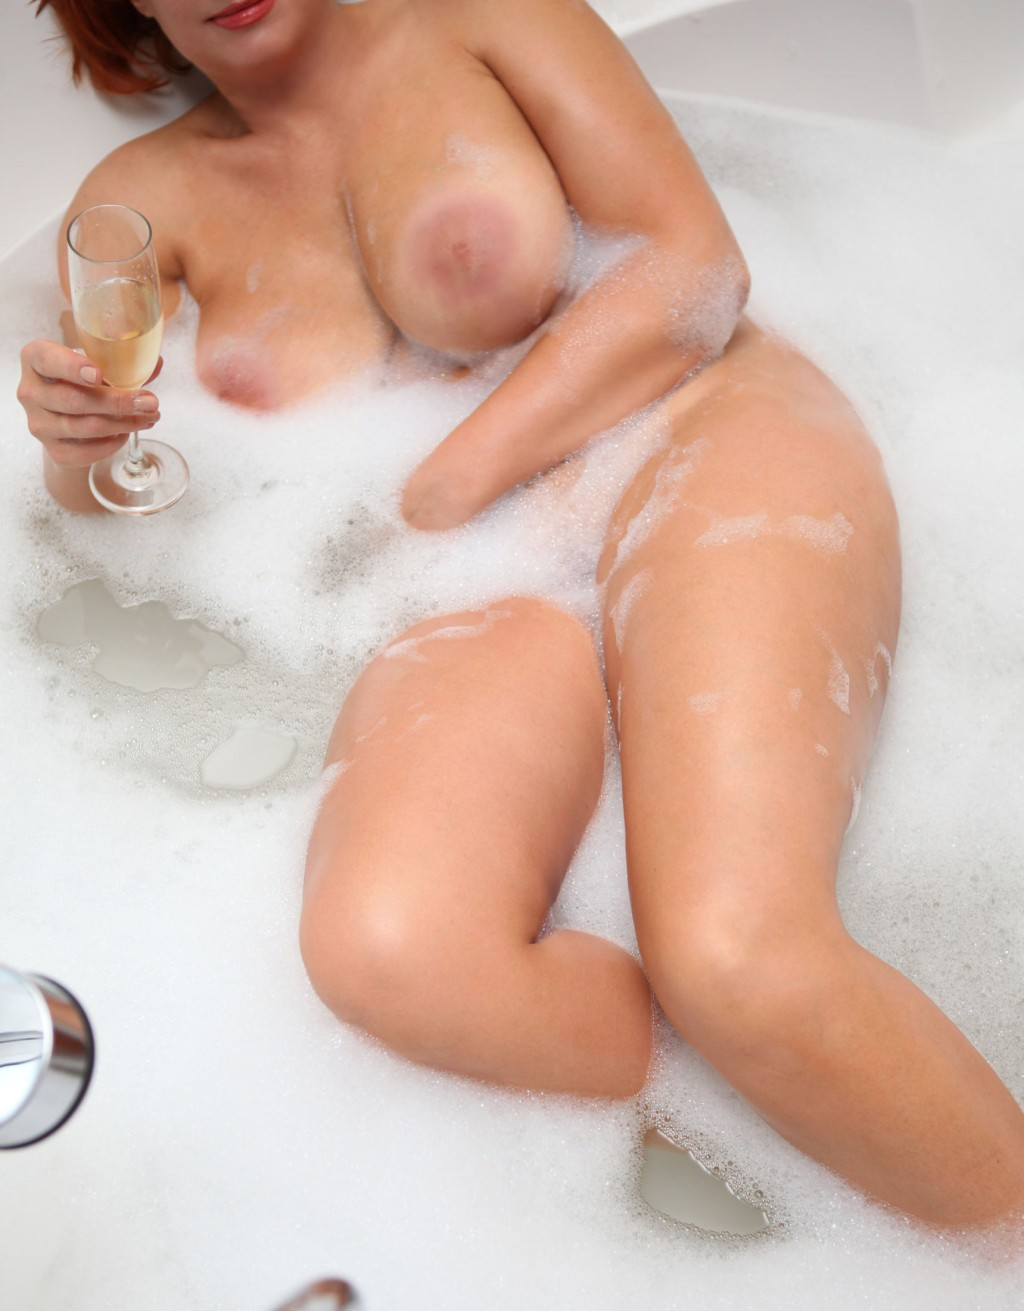 anal amatrice escort girls vip paris